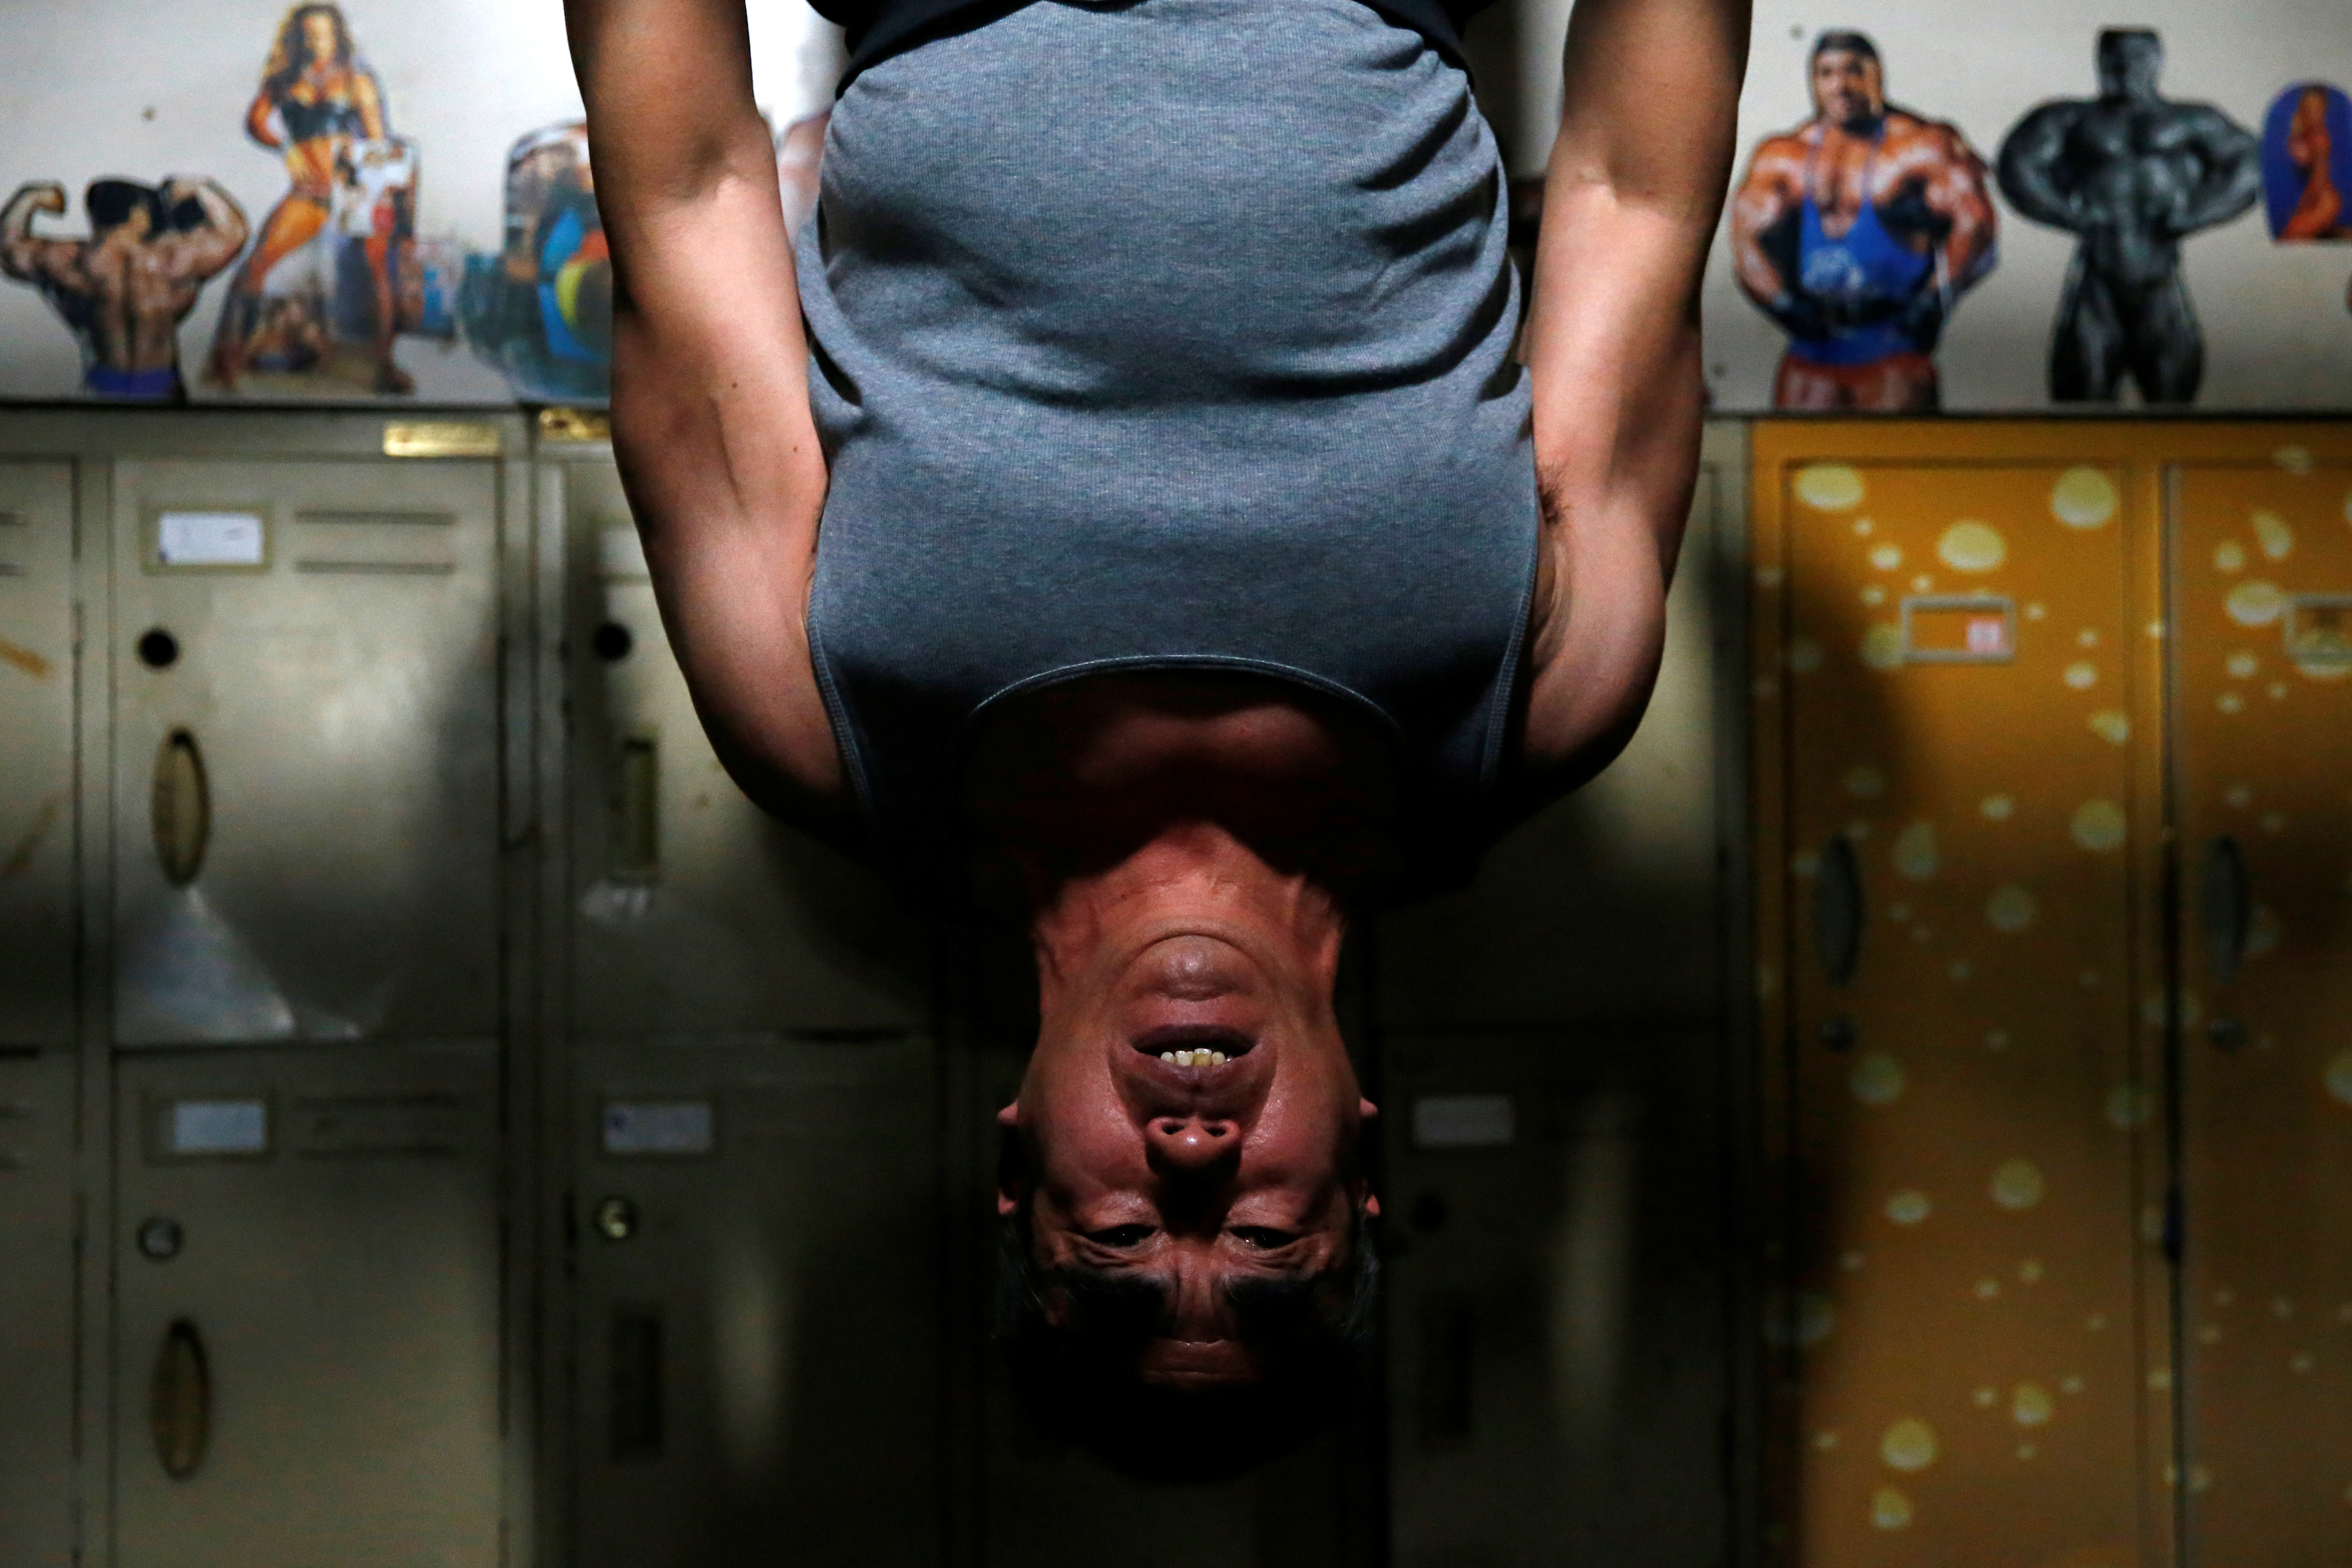 Zhao Shuyuan, 61, exercises at a gym which has been turned from a bicycle shed inside a residential compound in the southwest of Beijing, China April 8, 2021. REUTERS/Tingshu Wang